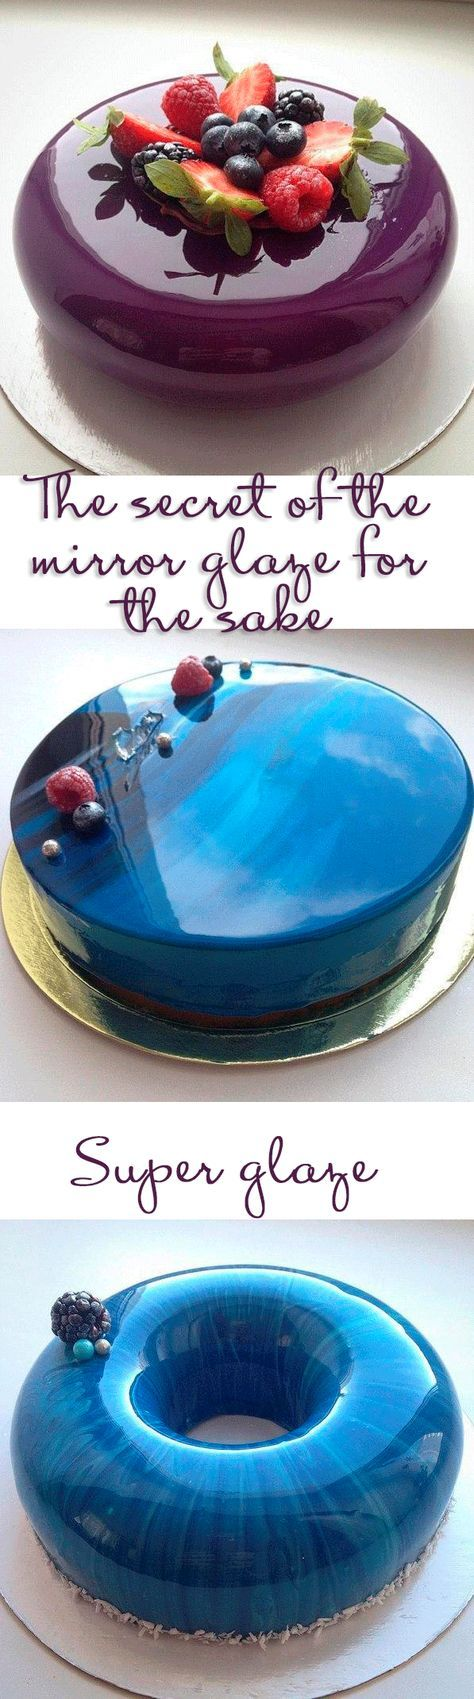 The secret of the mirror glaze for the cake